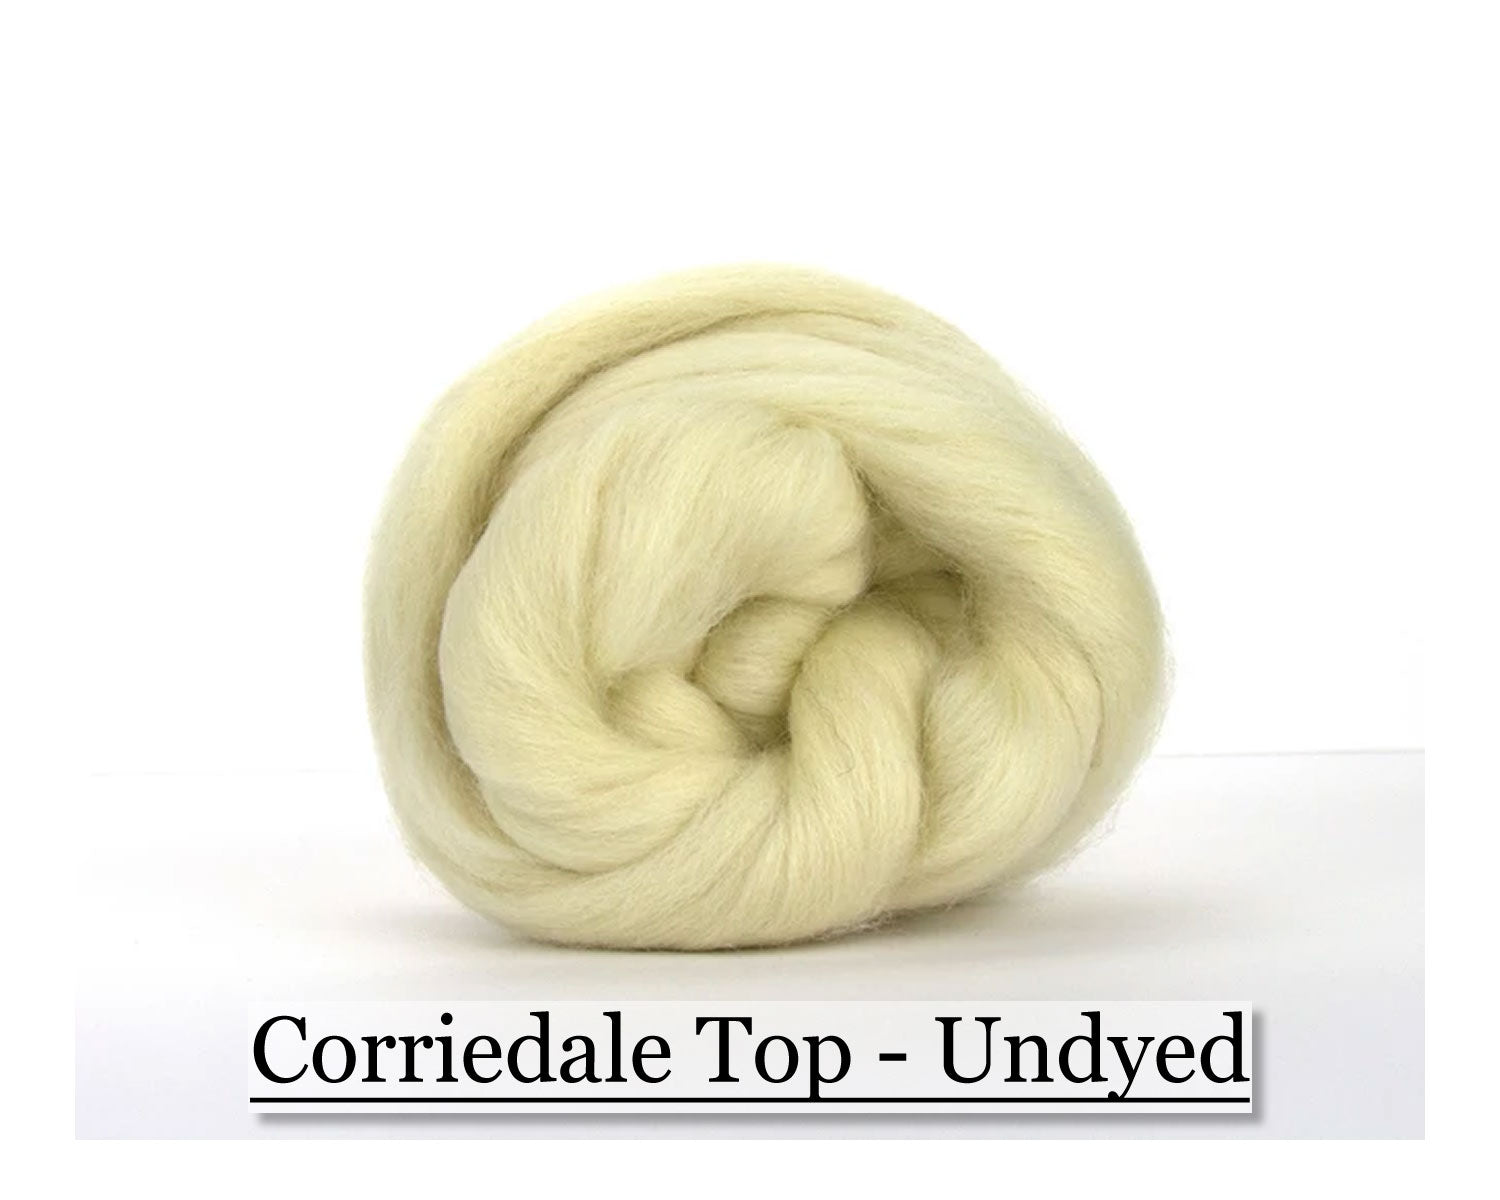 White Corriedale Top - 8 oz